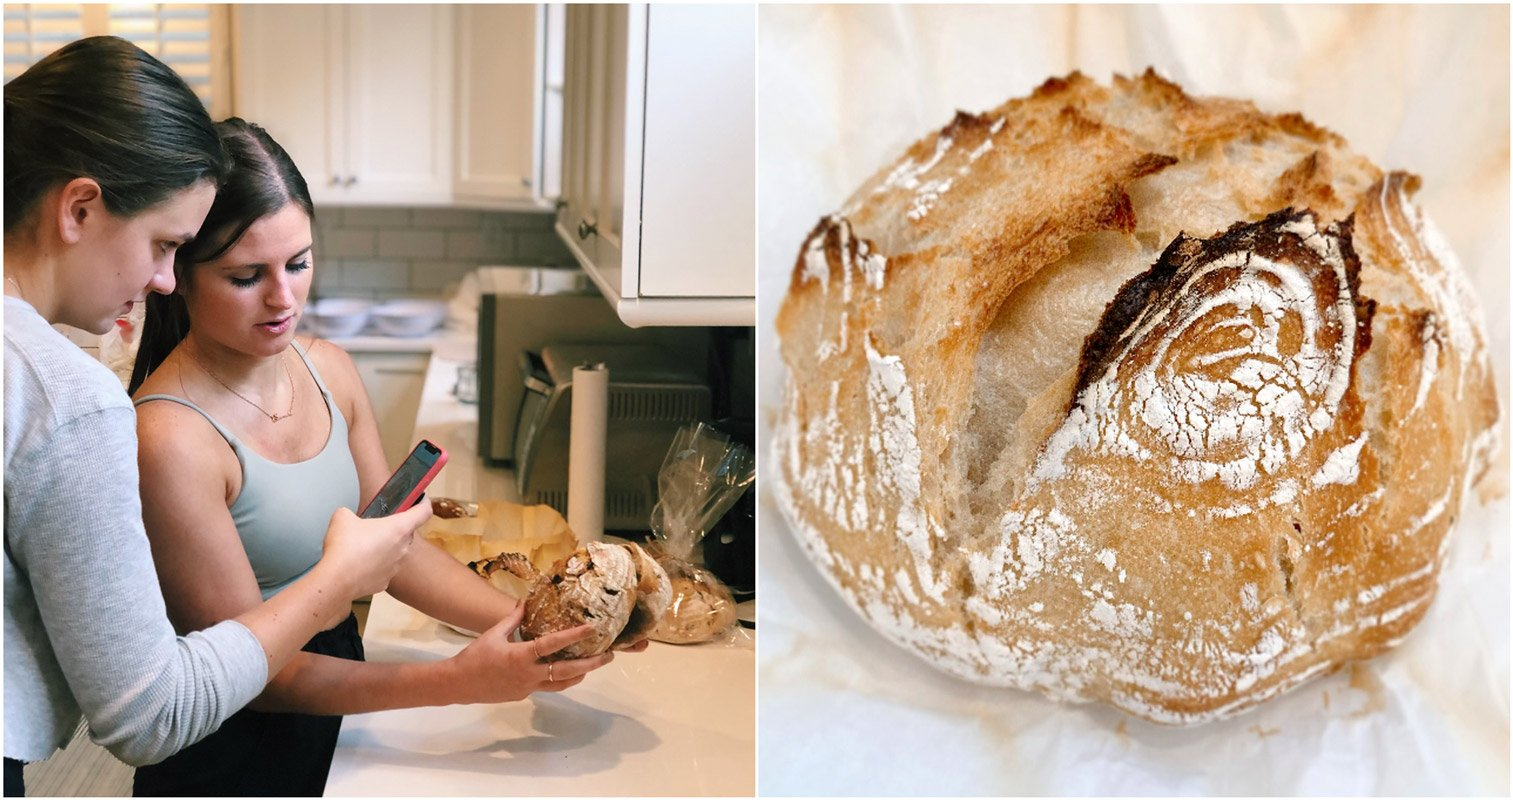 Two girls photograph freshly baked bread they made.